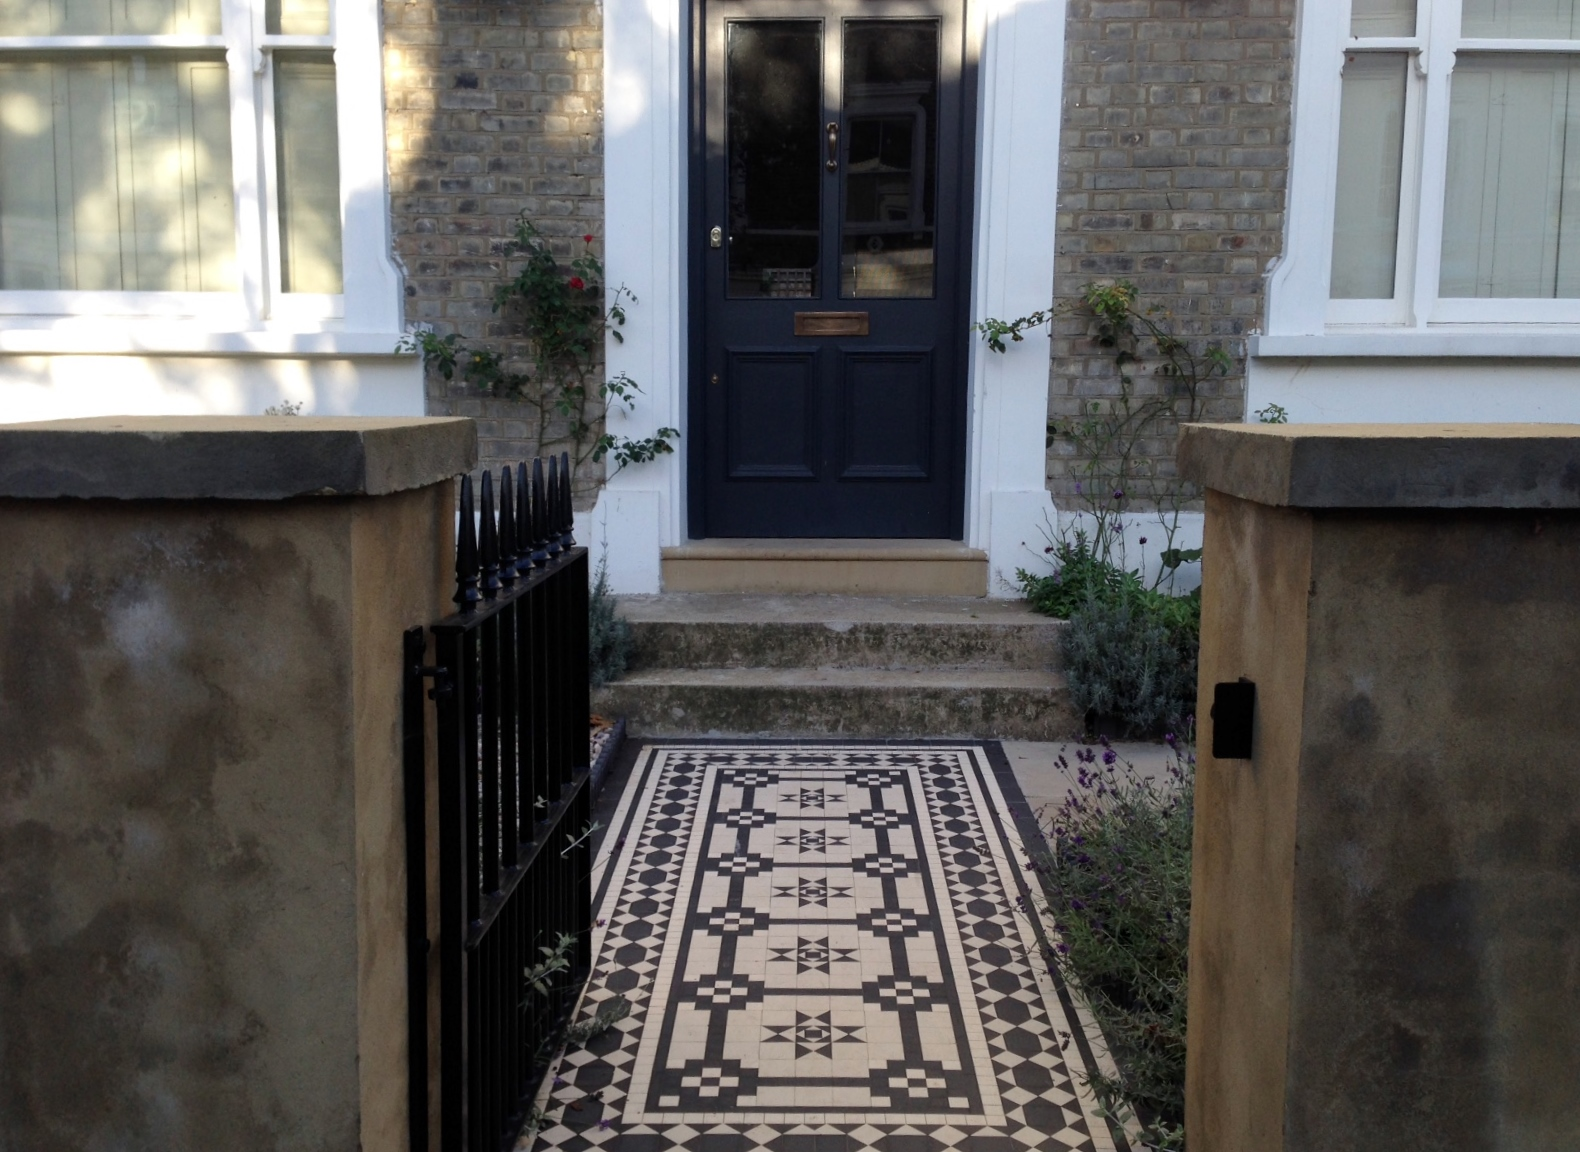 Islington Victorian mosaic tile path York stone sandstone paving wrought iron rails and gate London (45)